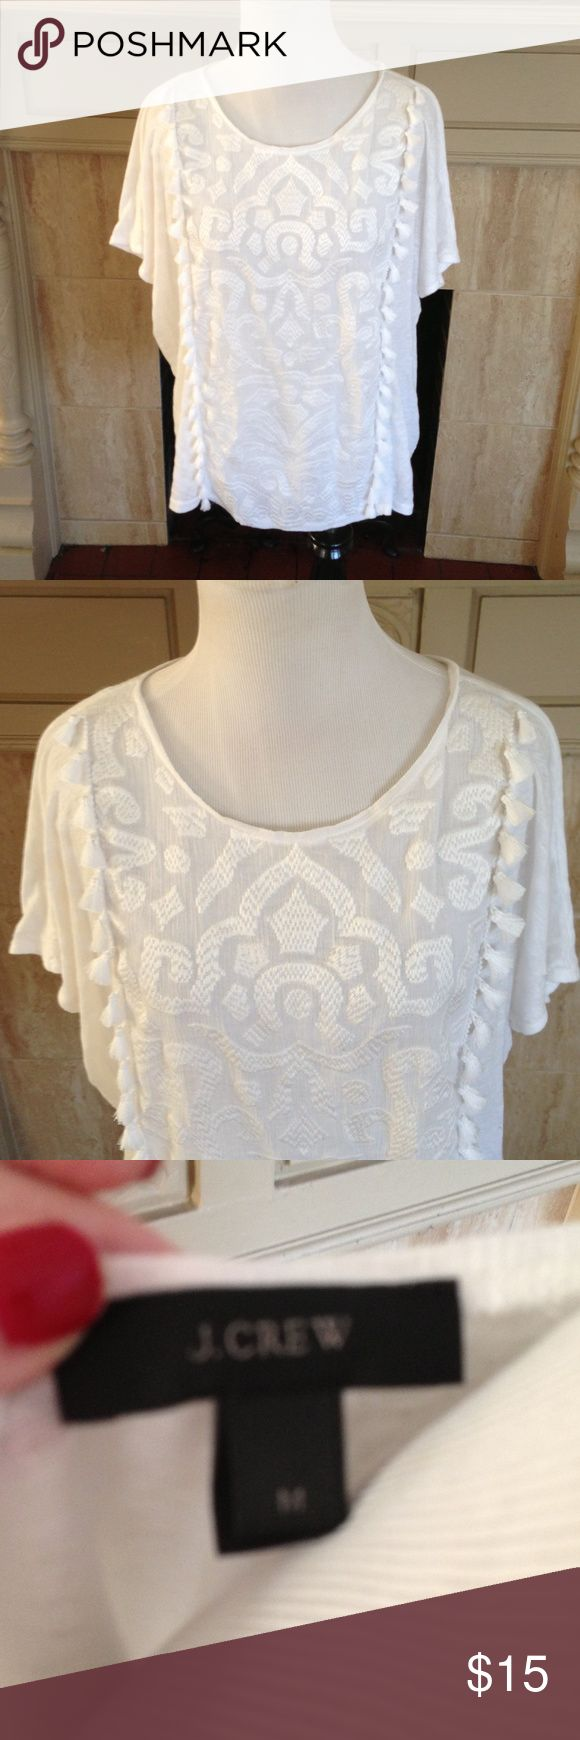 J Crew Boho Fringe Top Excellent condition J. Crew Tops